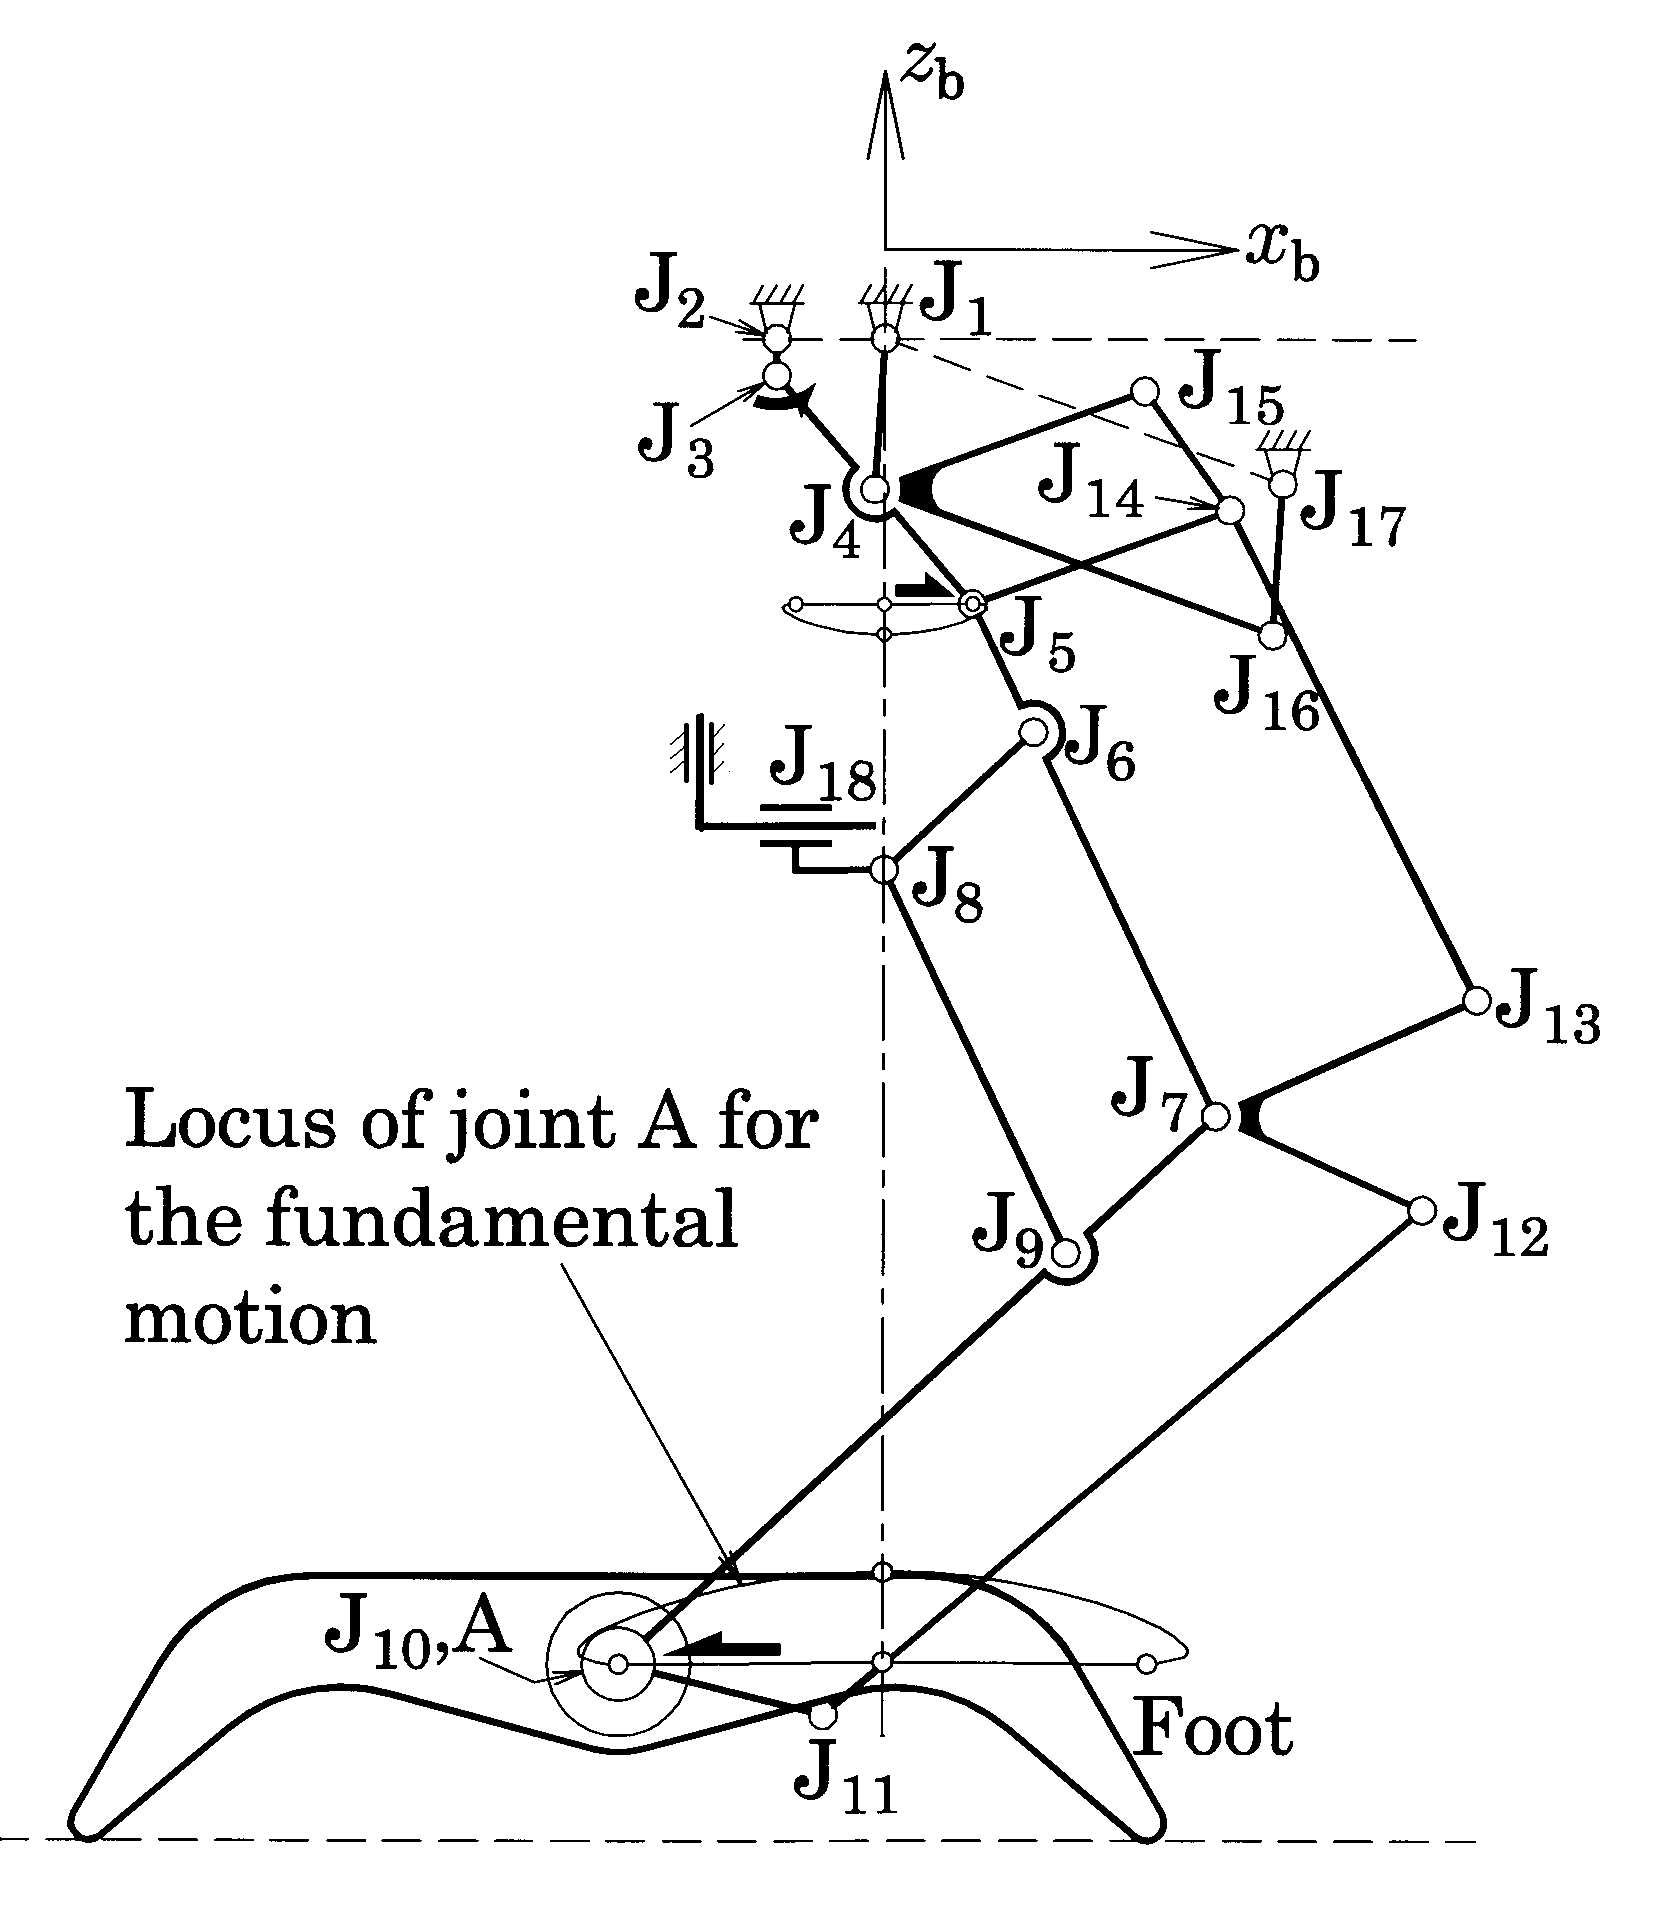 Composition of the Leg Mechanism